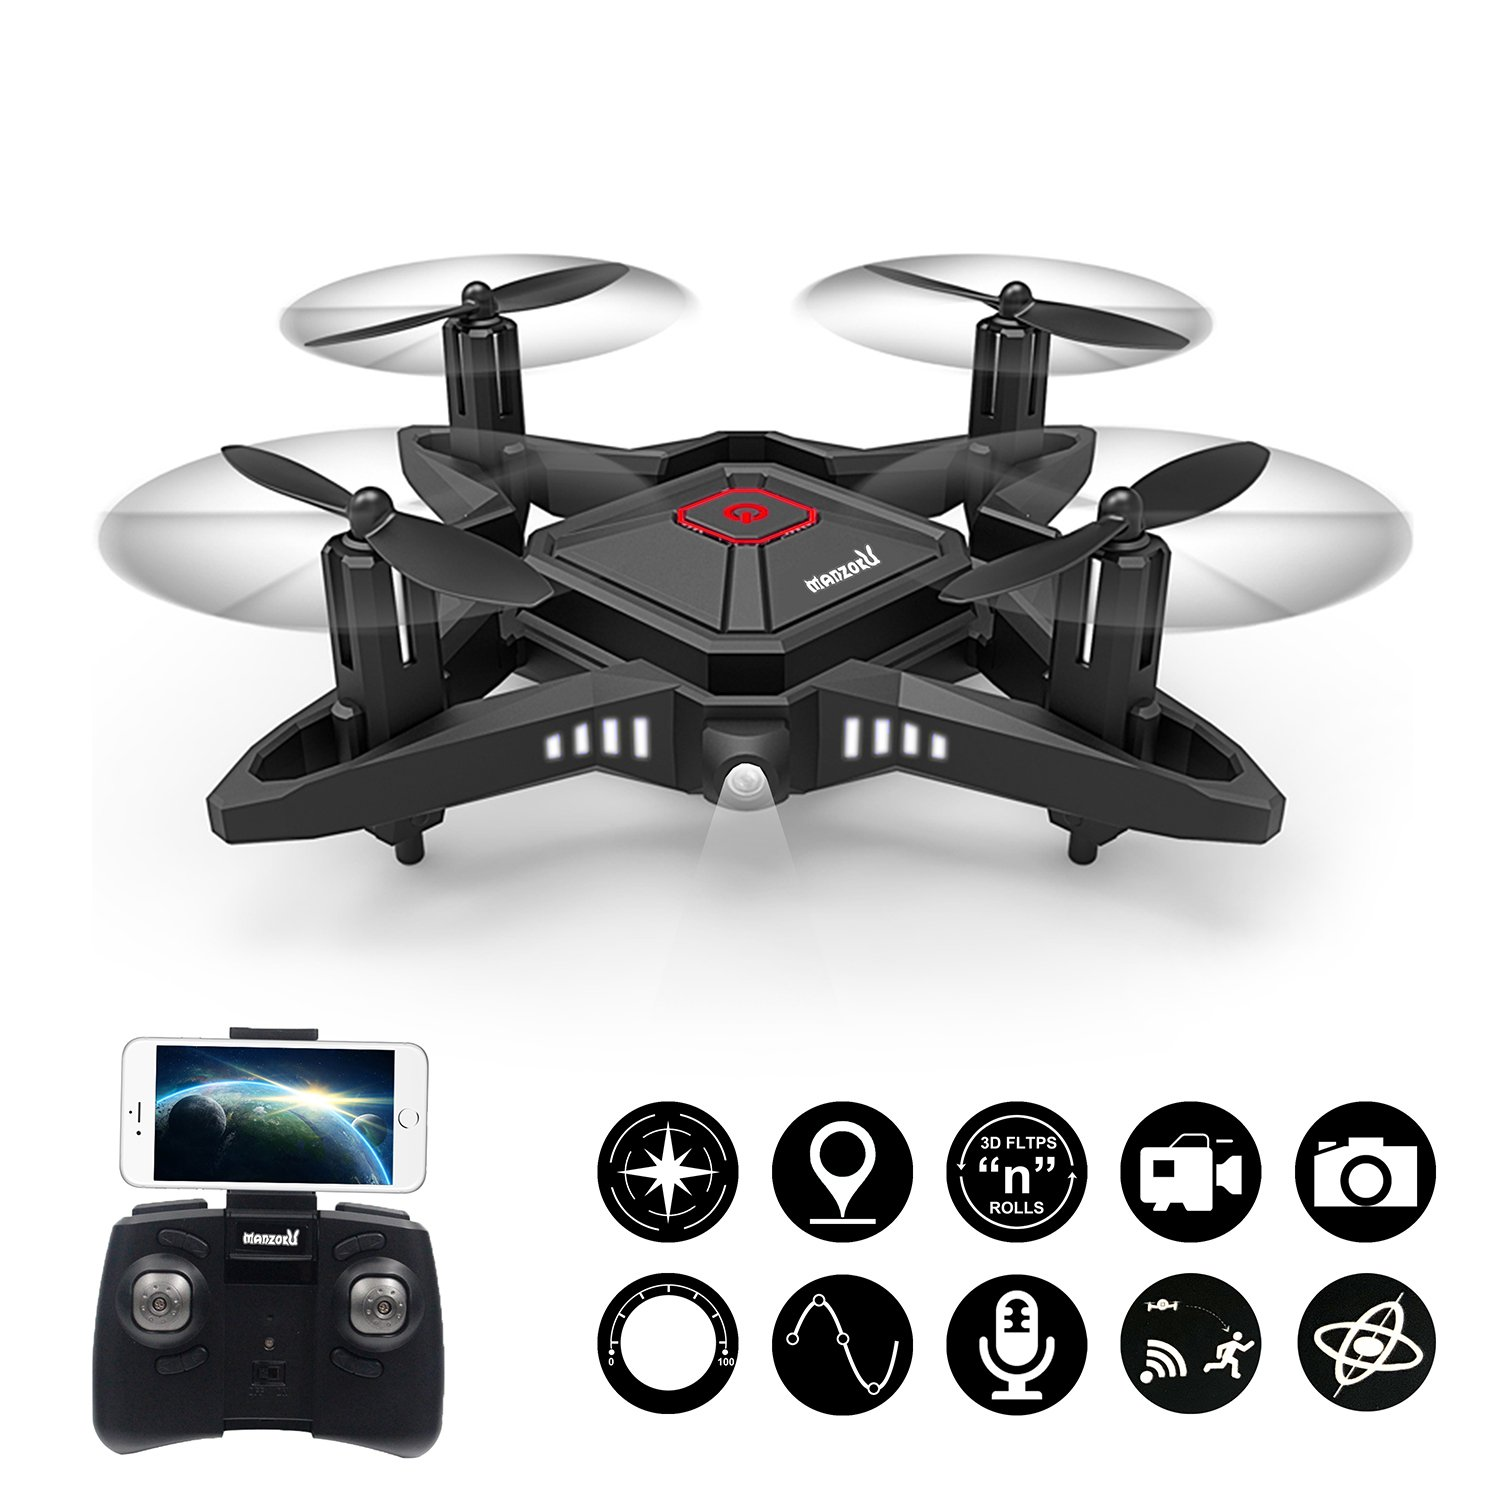 Foldable Mini RC Drone 2.4Ghz 6-Axis gyro Nano Quadcopter with HD Camera, Altitude Hold, 3D Flips, LED Lights, One Key Return and Headless Mode Drones for Beginners